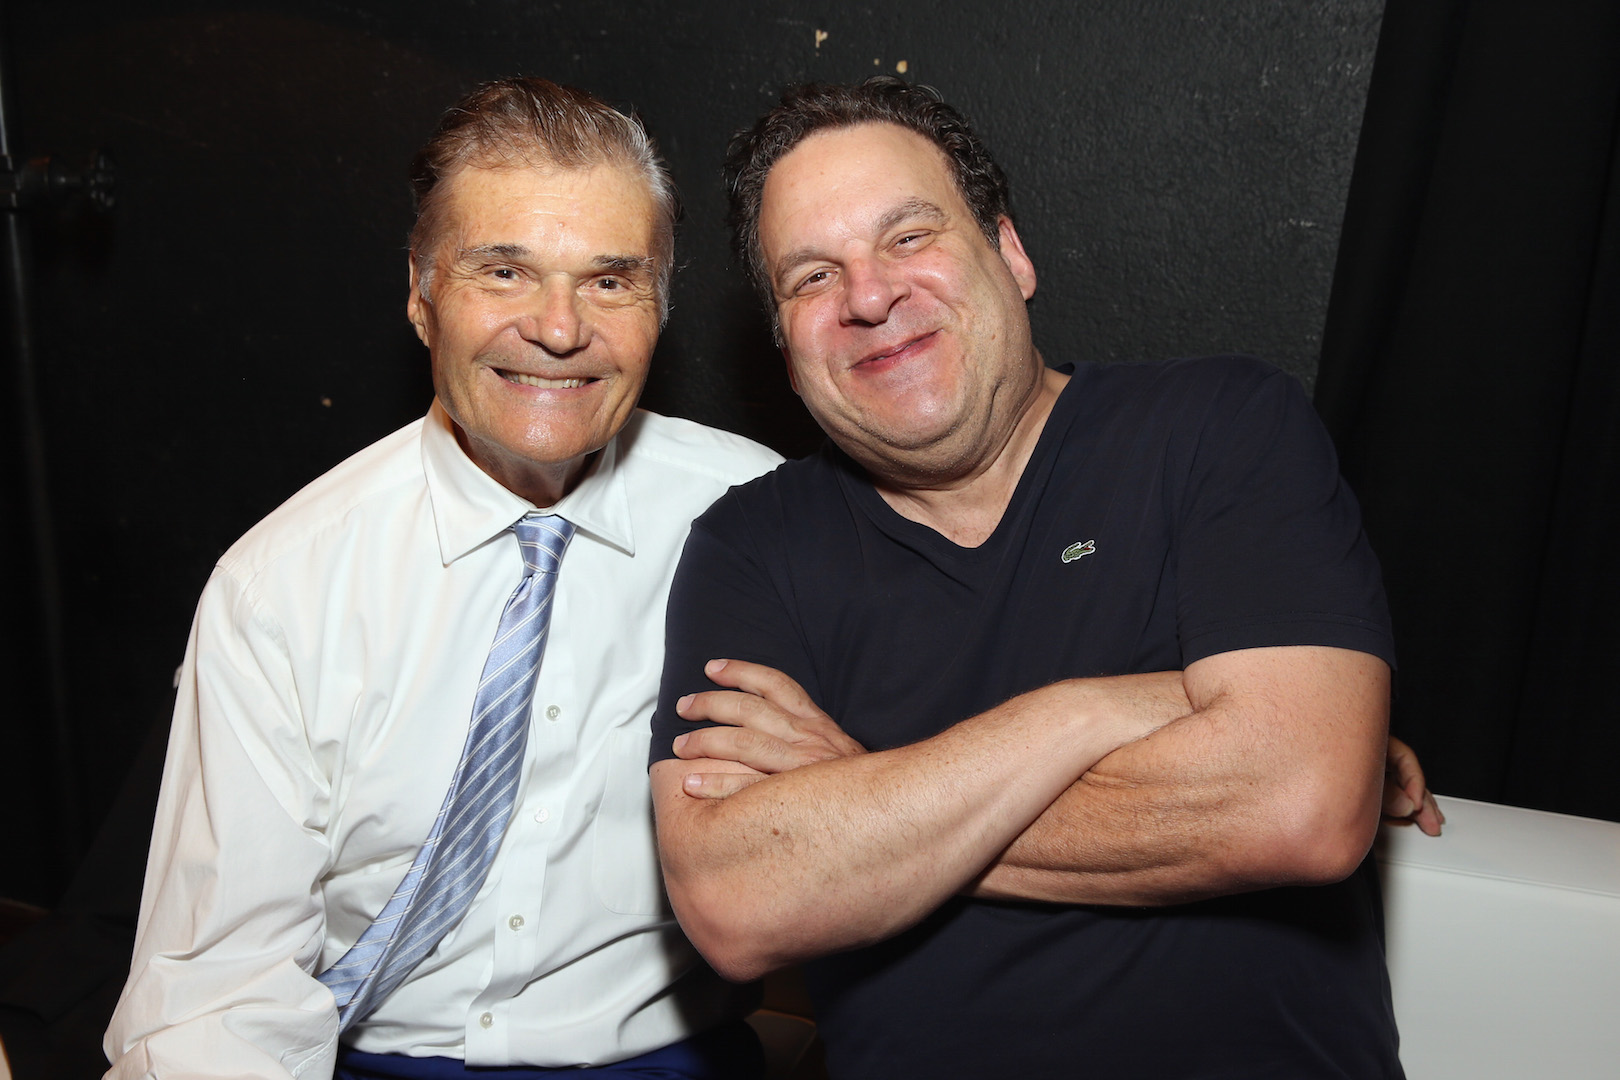 LOS ANGELES, CA - OCTOBER 10:  Host Fred Willard and comedian Jeff Garlin pose backstage during the 9th Annual Comedy Celebration, presented by the International Myeloma Foundation, at The Wilshire Ebell Theatre on October 10, 2015 in Los Angeles, California.  (Photo by Jesse Grant/Getty Images for for International Myeloma Foundation)